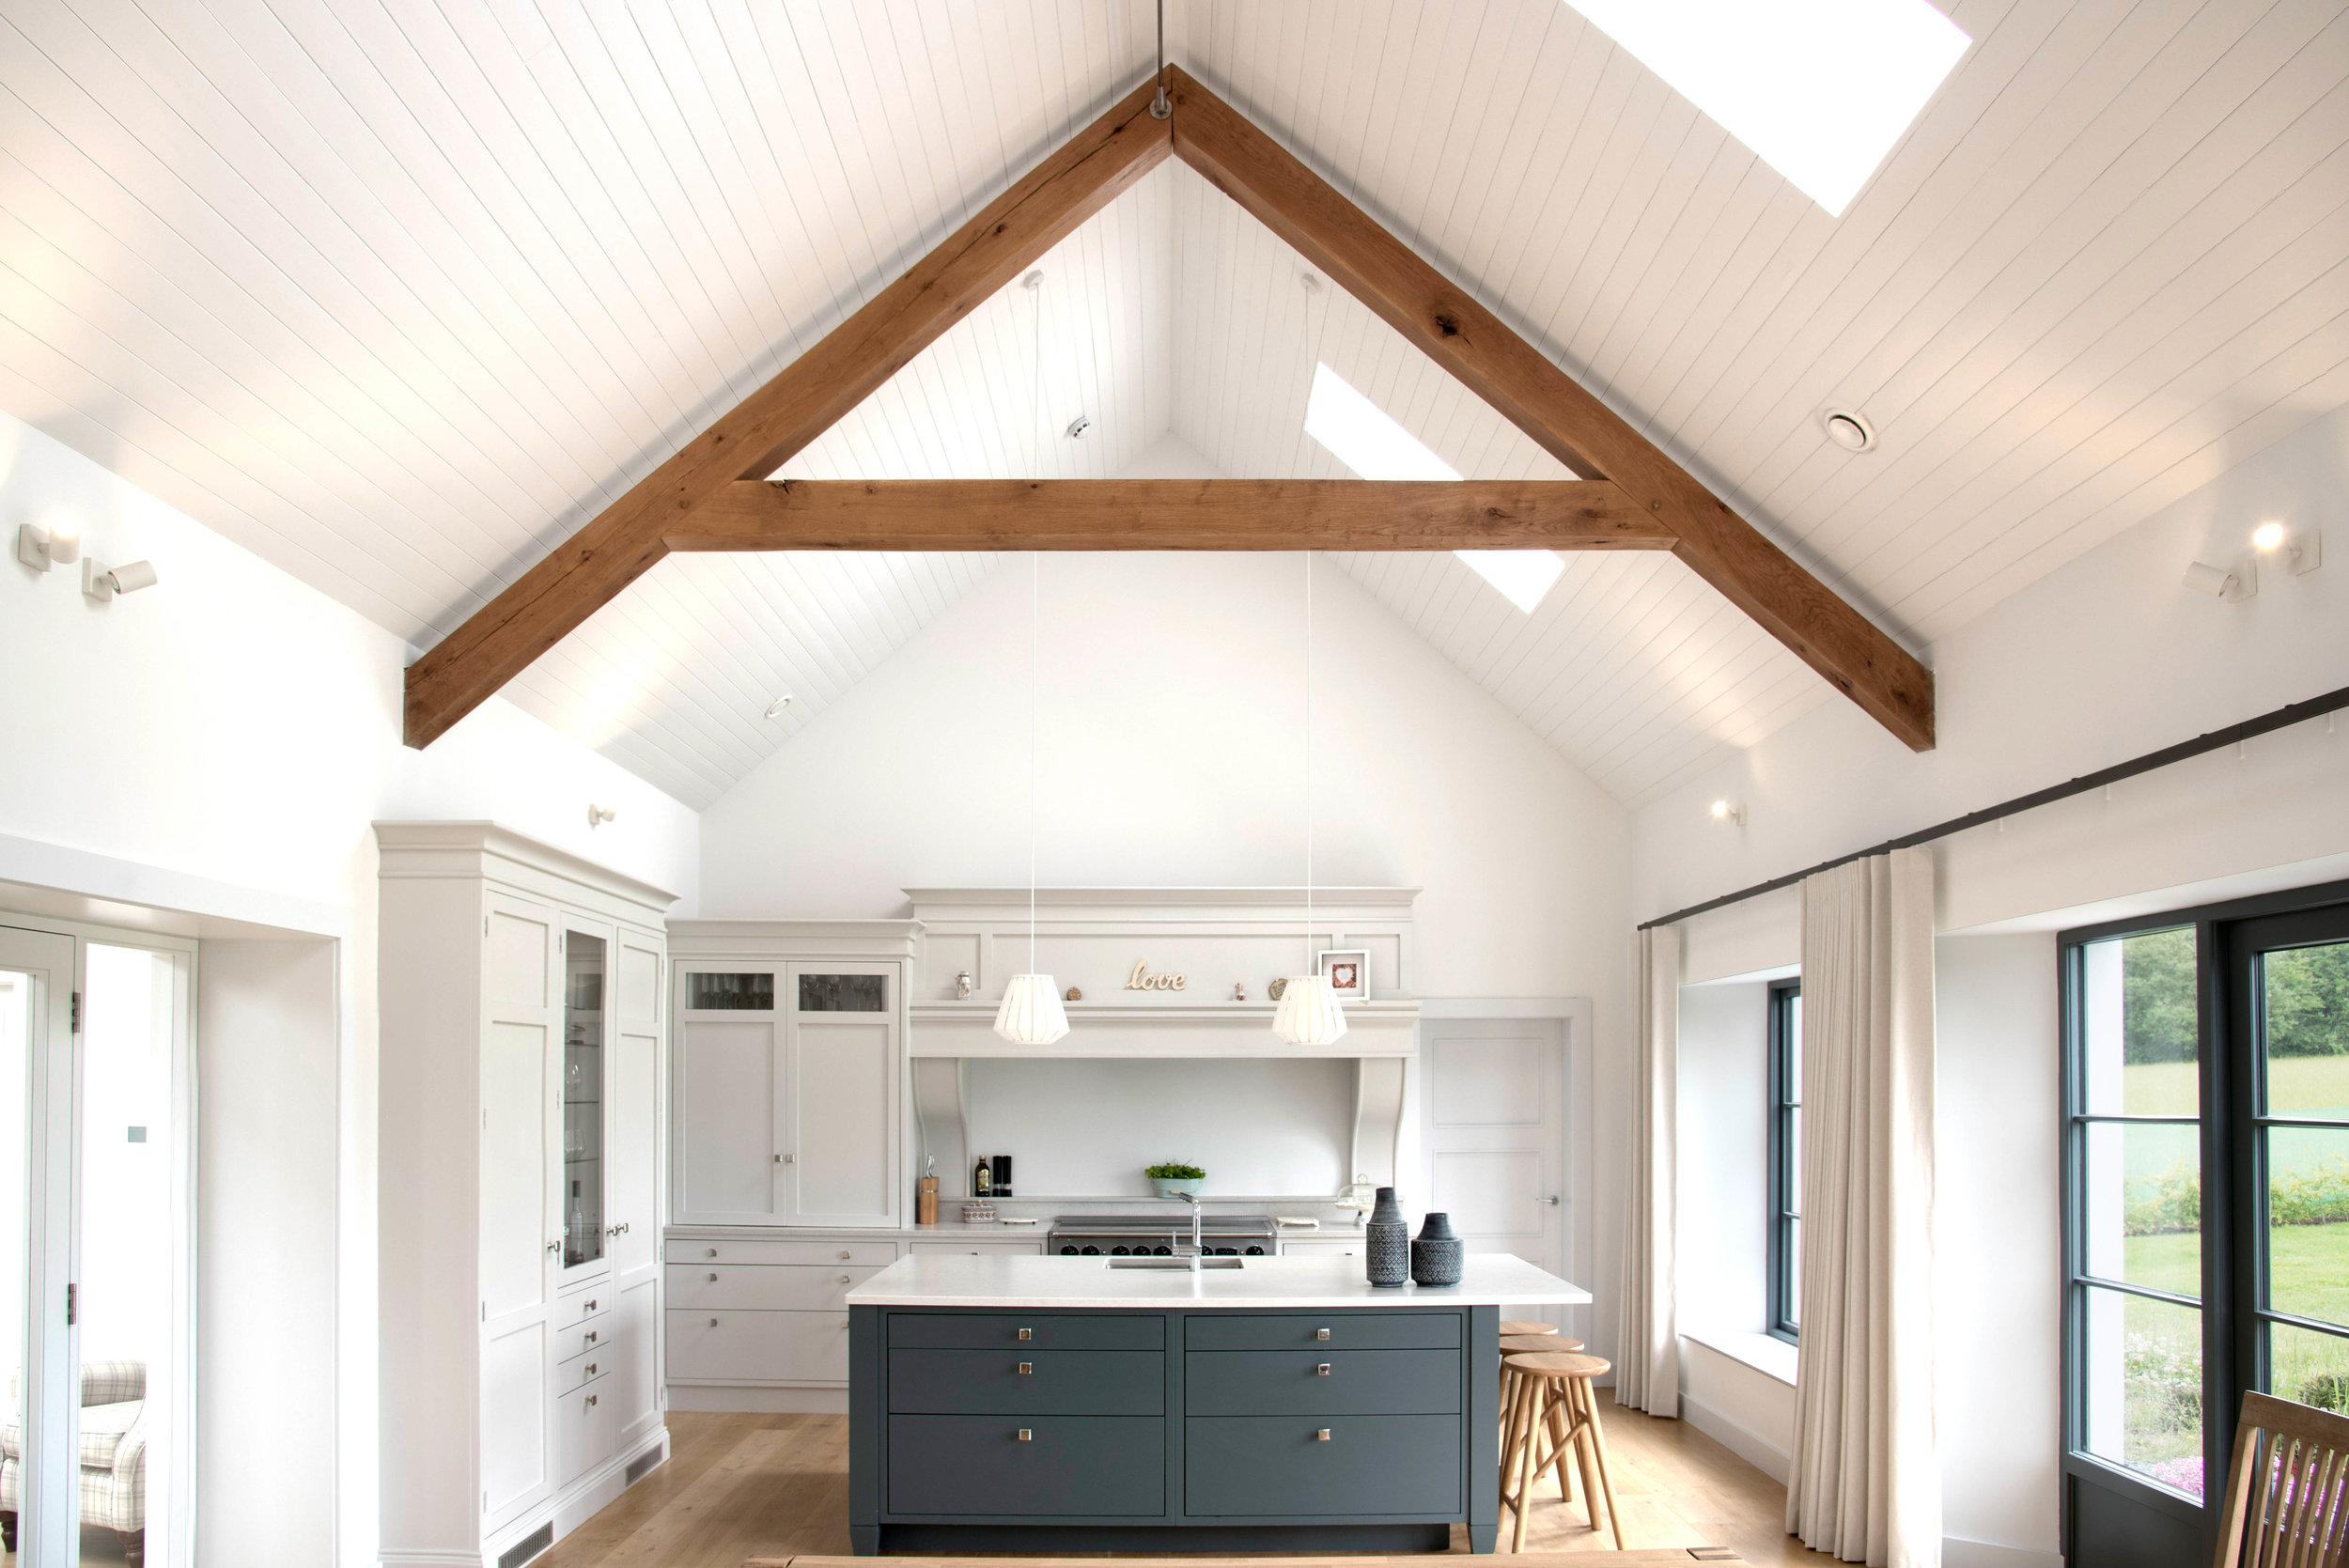 Paul_McAlister_Architects_Living_room_Kitchen.jpg